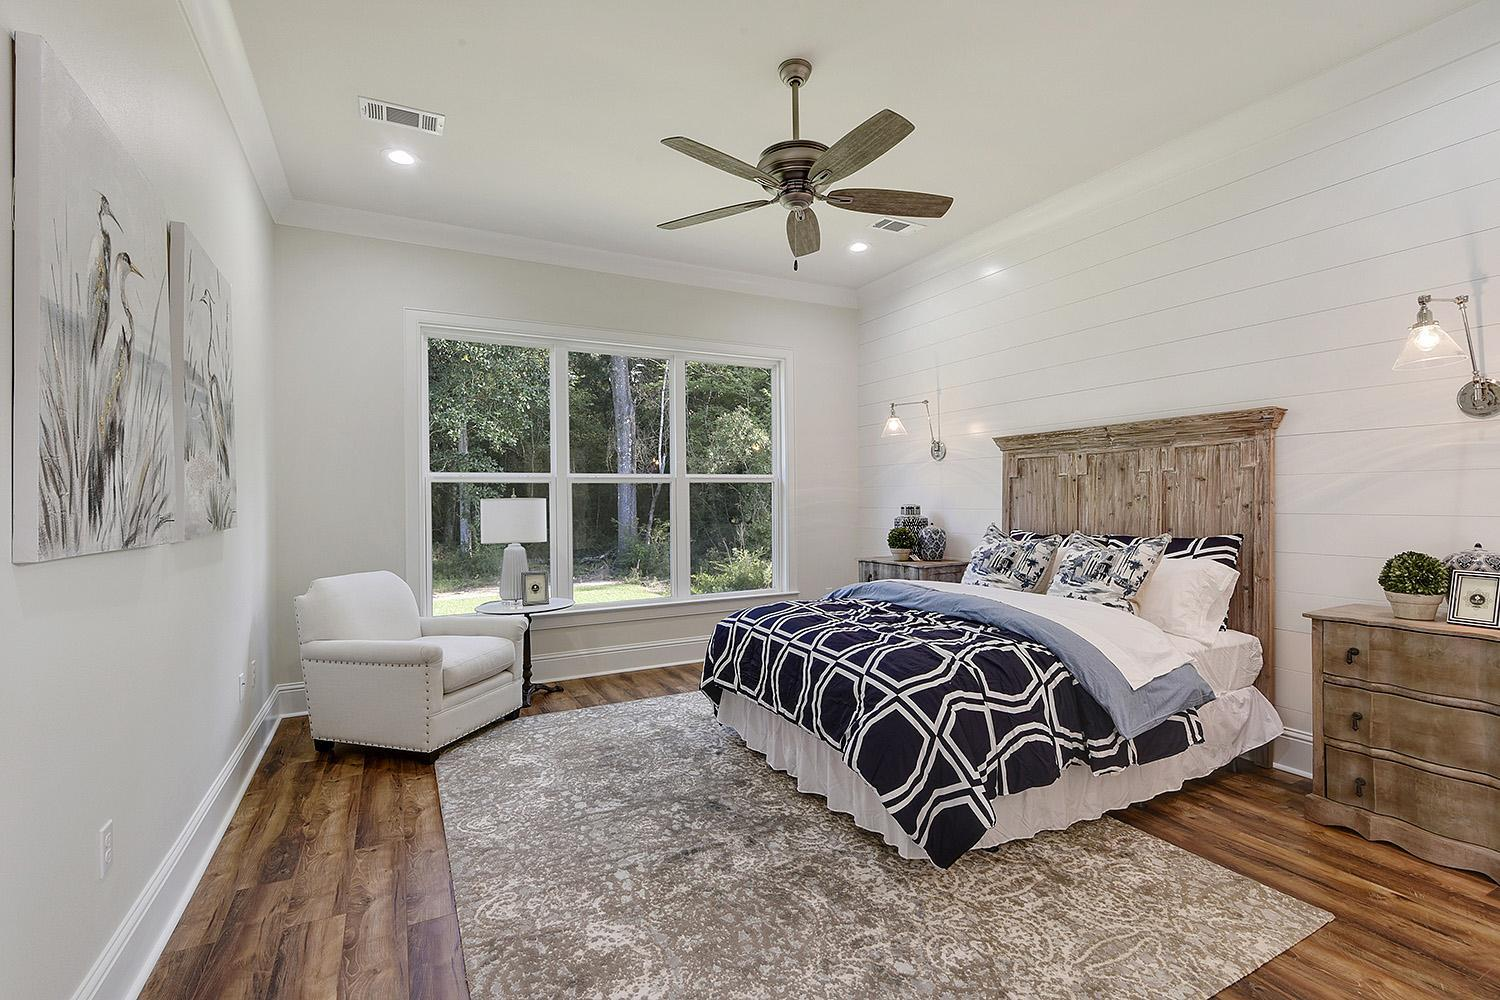 Bedroom featured in the Loren By Highland Homes in New Orleans, LA